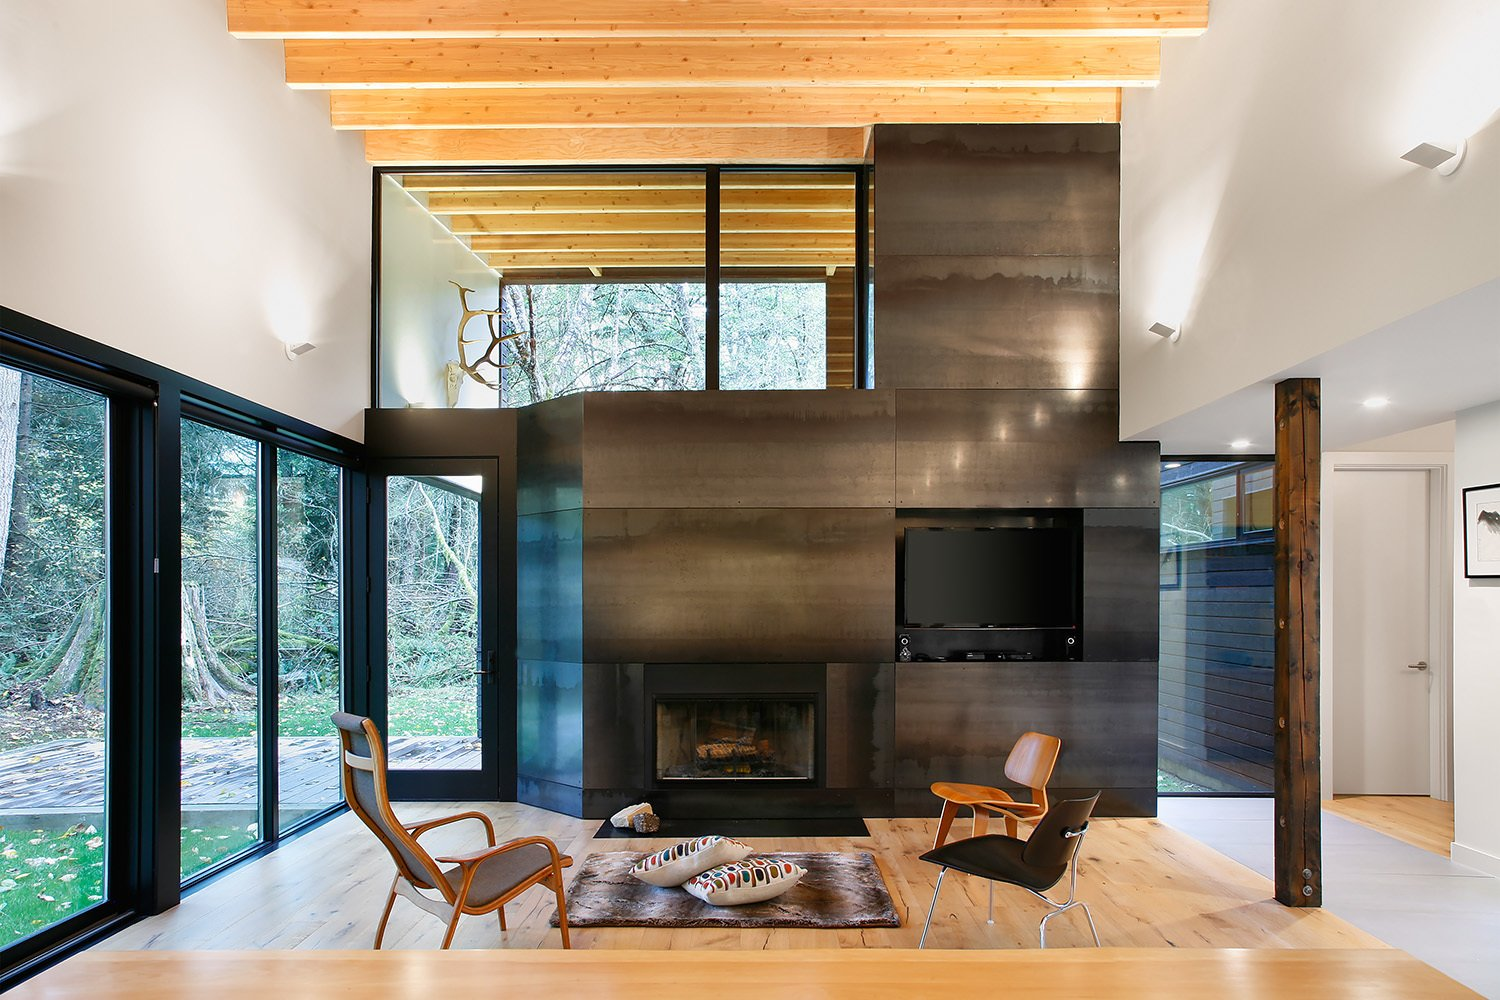 """""""From the courtyard, you then enter the house proper, directly into the main living room,"""" Hutchison says. """"From this room, you have a panoramic view looking out through the trees to the river, or back into the courtyard."""" The wood-burning fireplace, from Majestic, is clad in steel panels. Eames Molded Plywood lounge chairs sit side-by-side in the living room.  Courtyard House on a River by Kelly Dawson"""